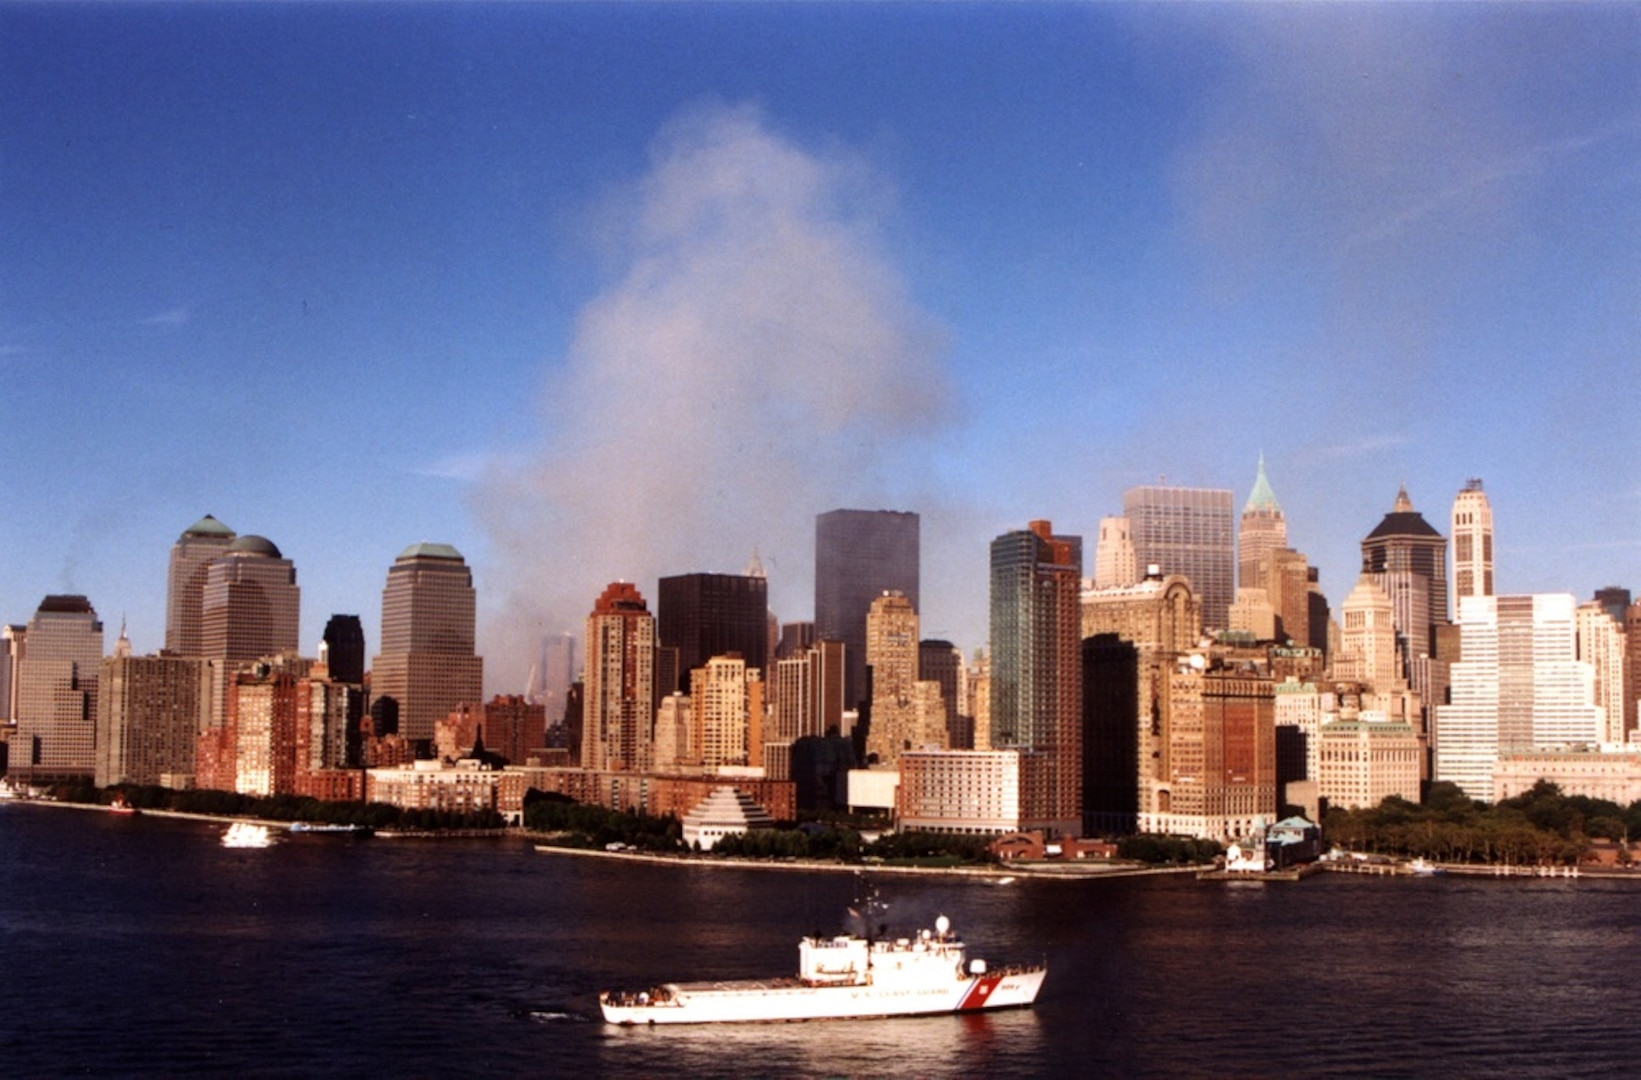 NEW YORK, New York (Sept. 15)--The World Trade Center complex continues to burn, while the Coast Guard Cutter Tahoma controls vessel traffic in New York harbor September 15. USCG photo by PAC Brandon Brewer